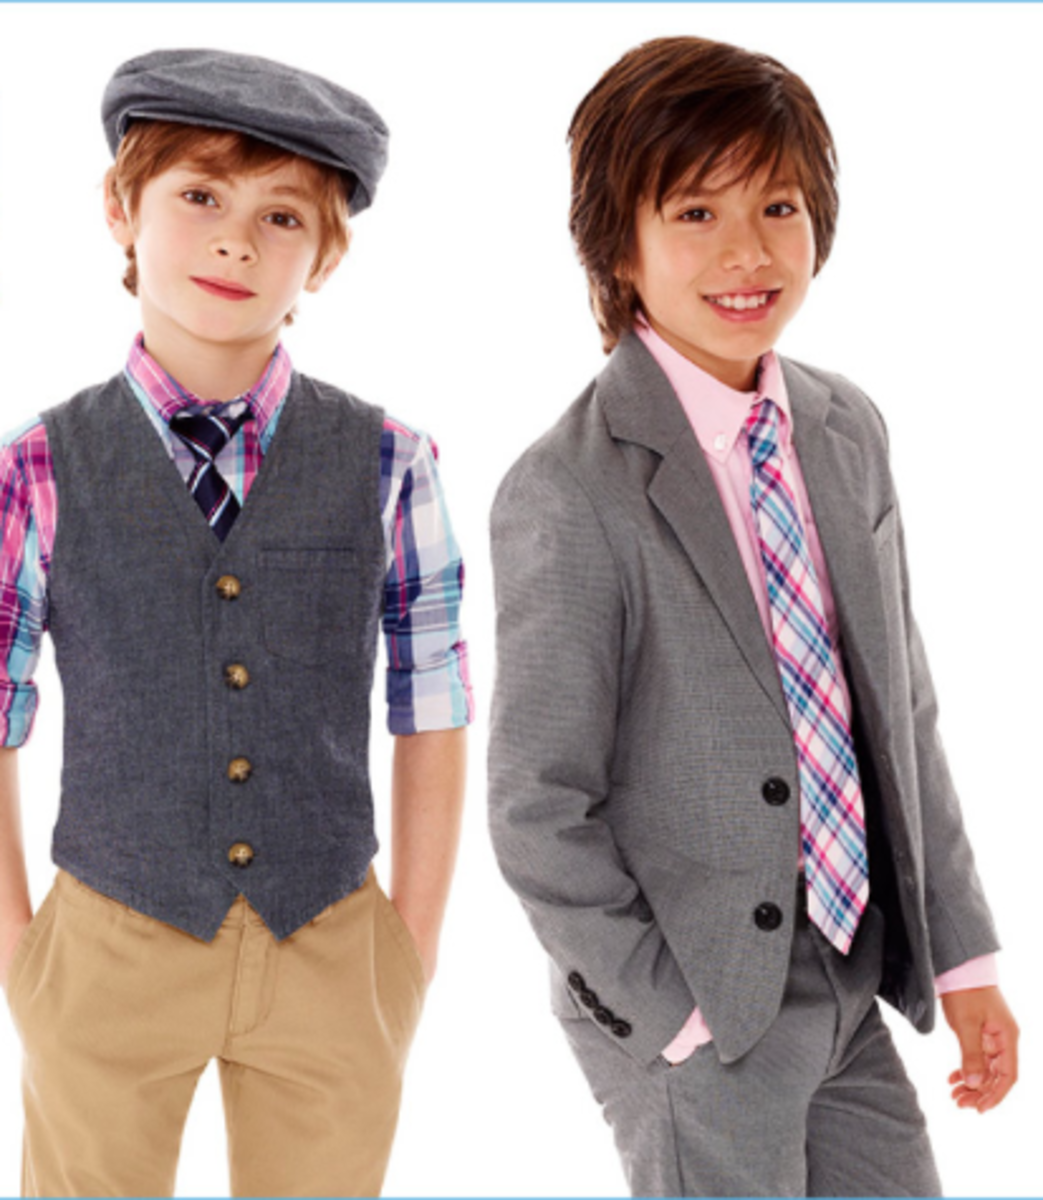 Help your kids celebrate Easter in style with a brand new outfit. Our Easter clothing styles are perfect for wearing to church, a party or a celebratory dinner.